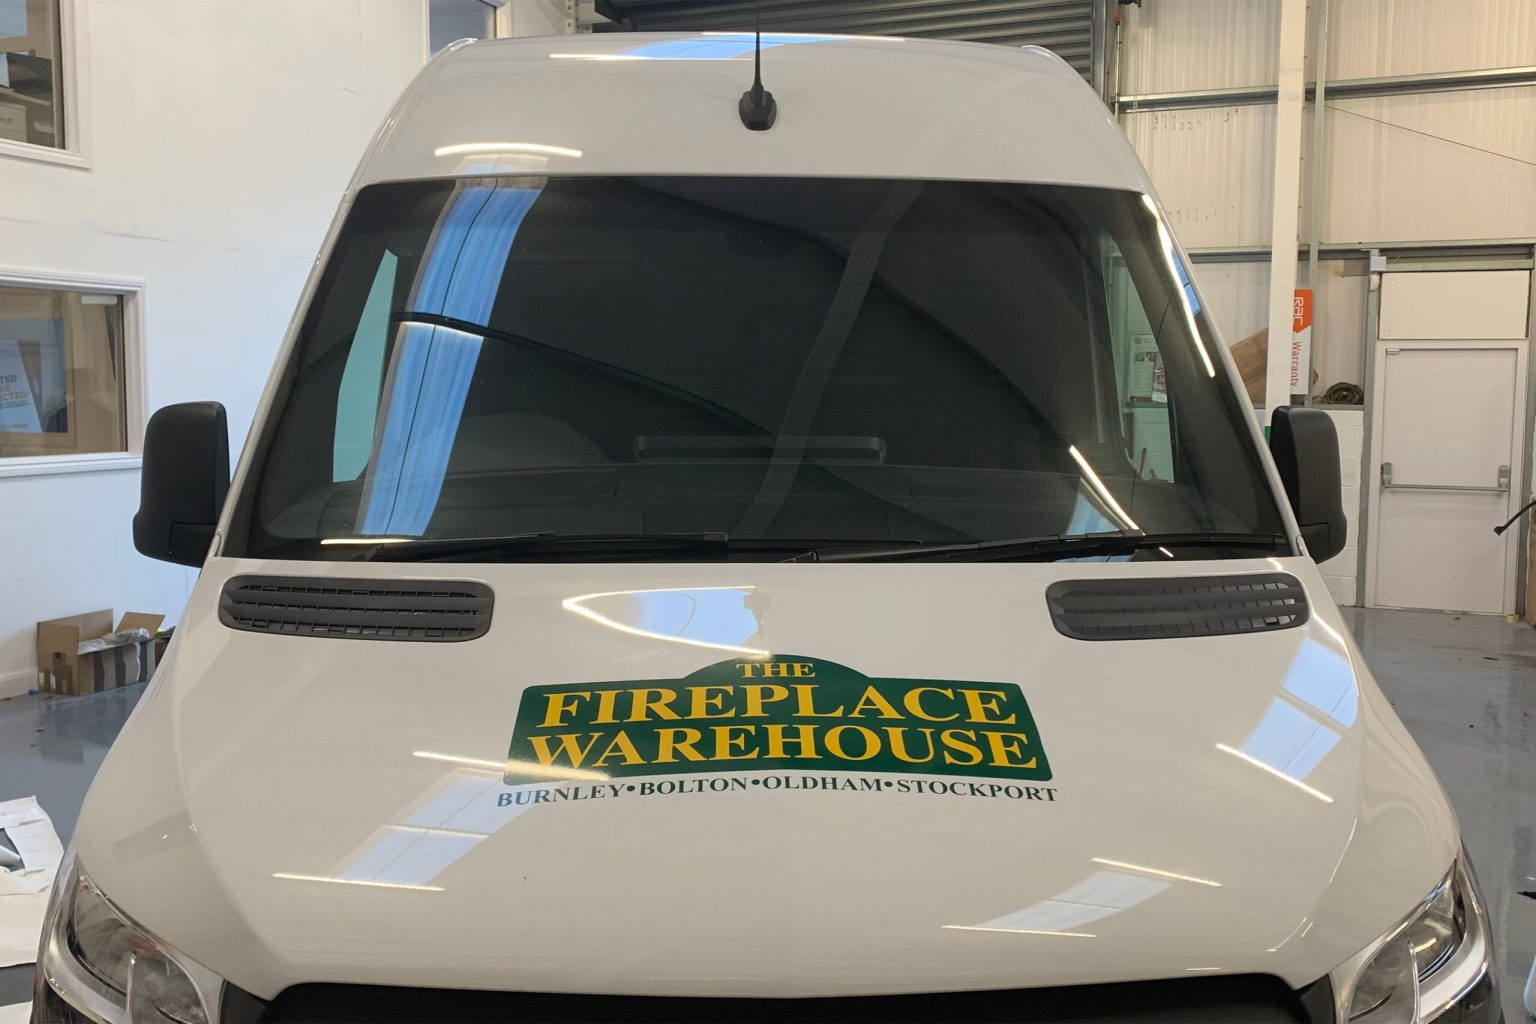 The Fireplace Warehouse Vehicle Graphics